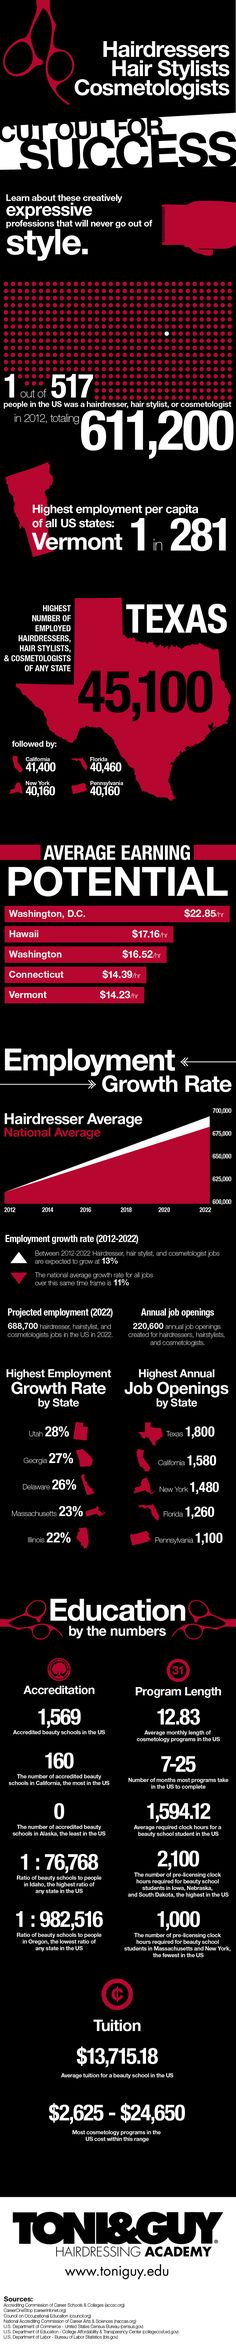 Infographic showcasing the current state and professional potential of hairdresser, hair stylist, and cosmetologist careers in the United States. Hair Facts, Toni And Guy, Salon Business, Beauty Industry, Cosmetology, Hairdresser, Salons, Infographic, Believe